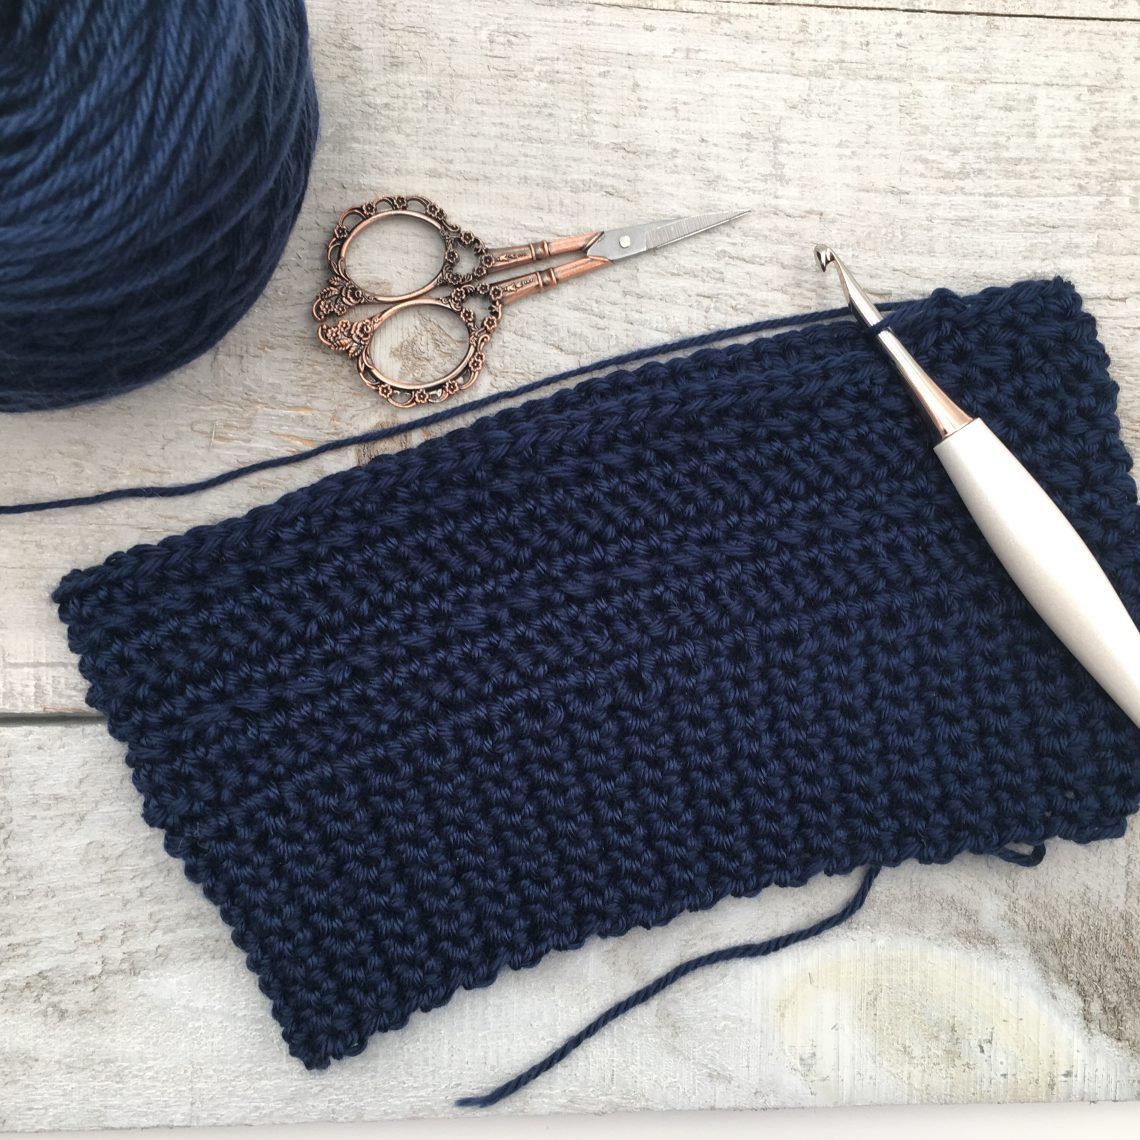 Crochet Pattern Tester: What You Need To Get Started.